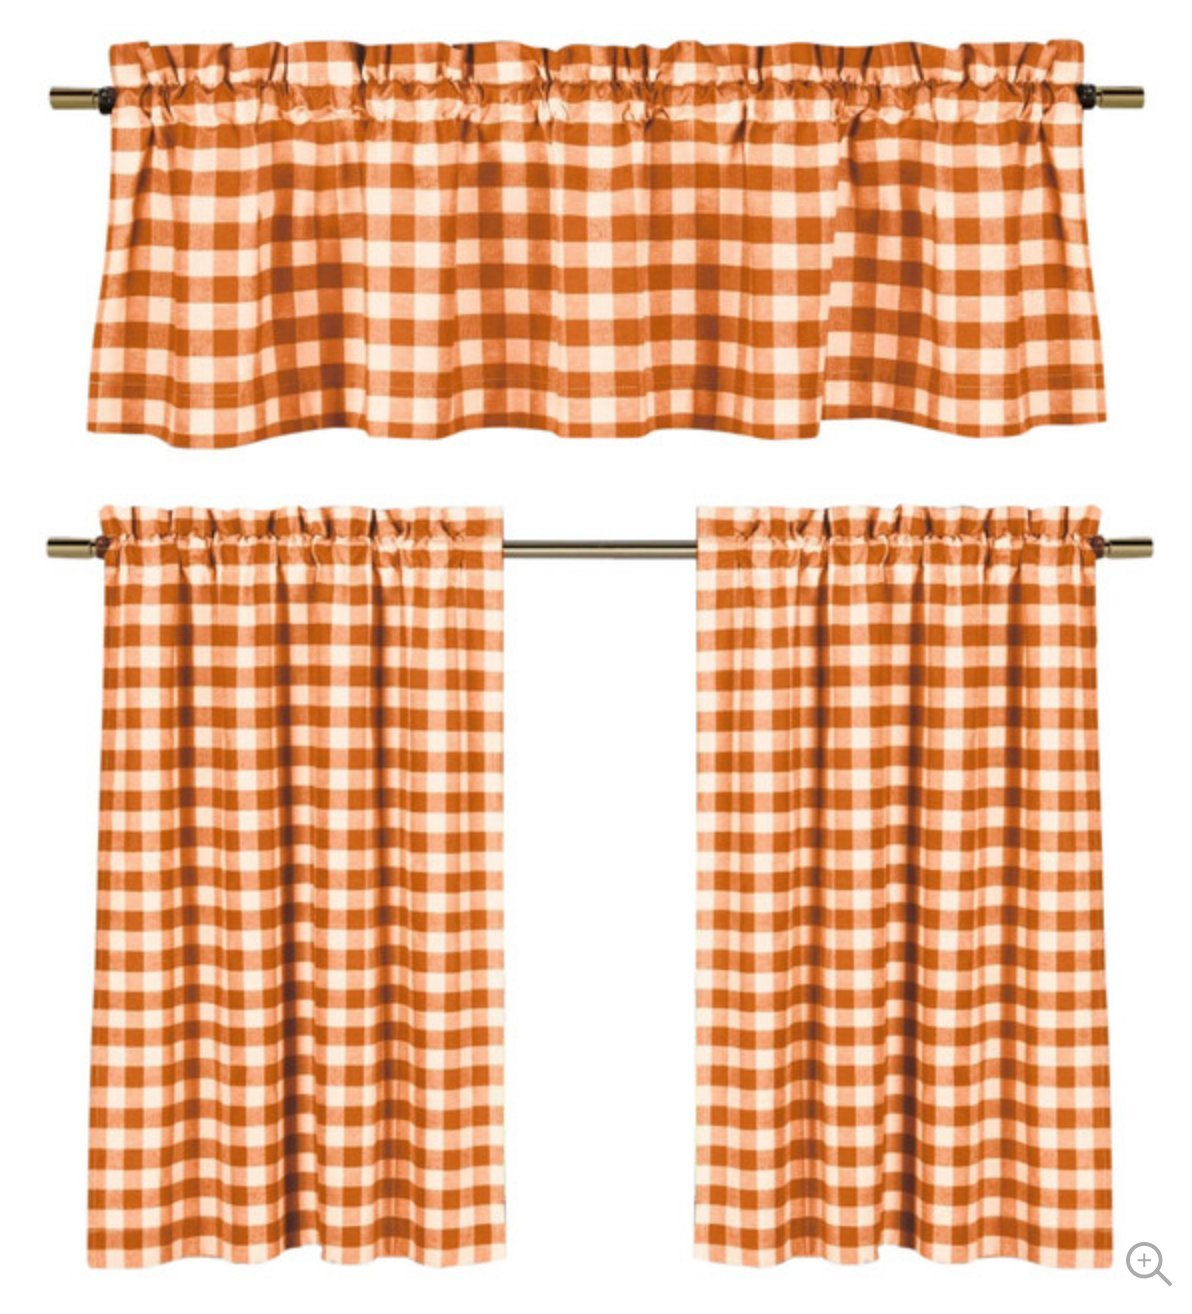 Plaid Country Chic Cotton Blend Kitchen Curtain Tier & Valance Set - Assorted Colors Orange